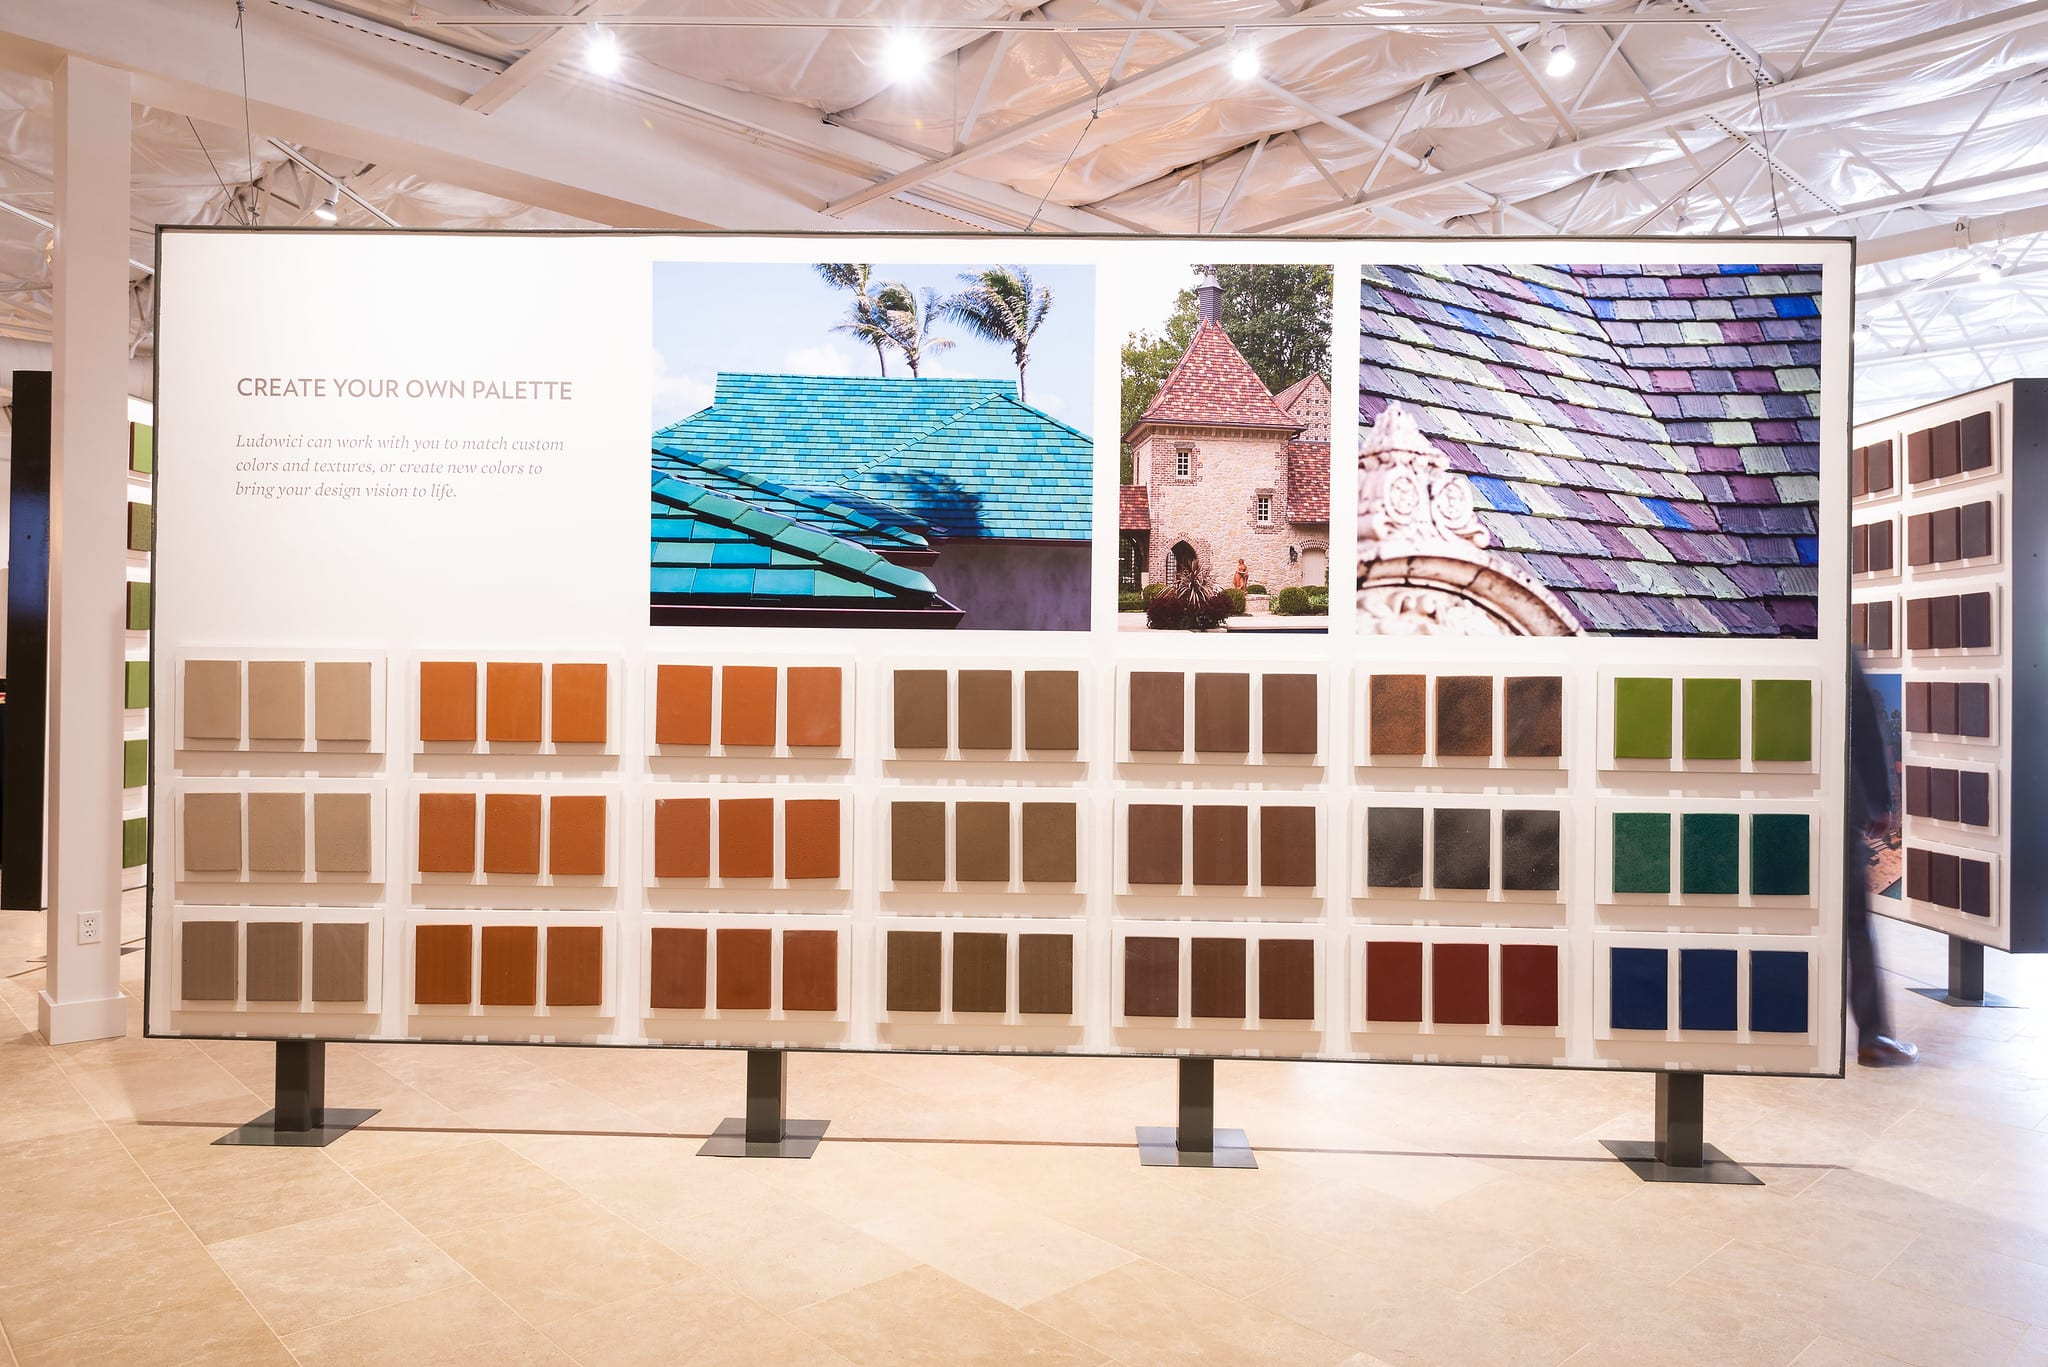 With over 45 roof tile displays, 200 texture and color boards, and 50 flooring vignettes – the design inspiration is endless.